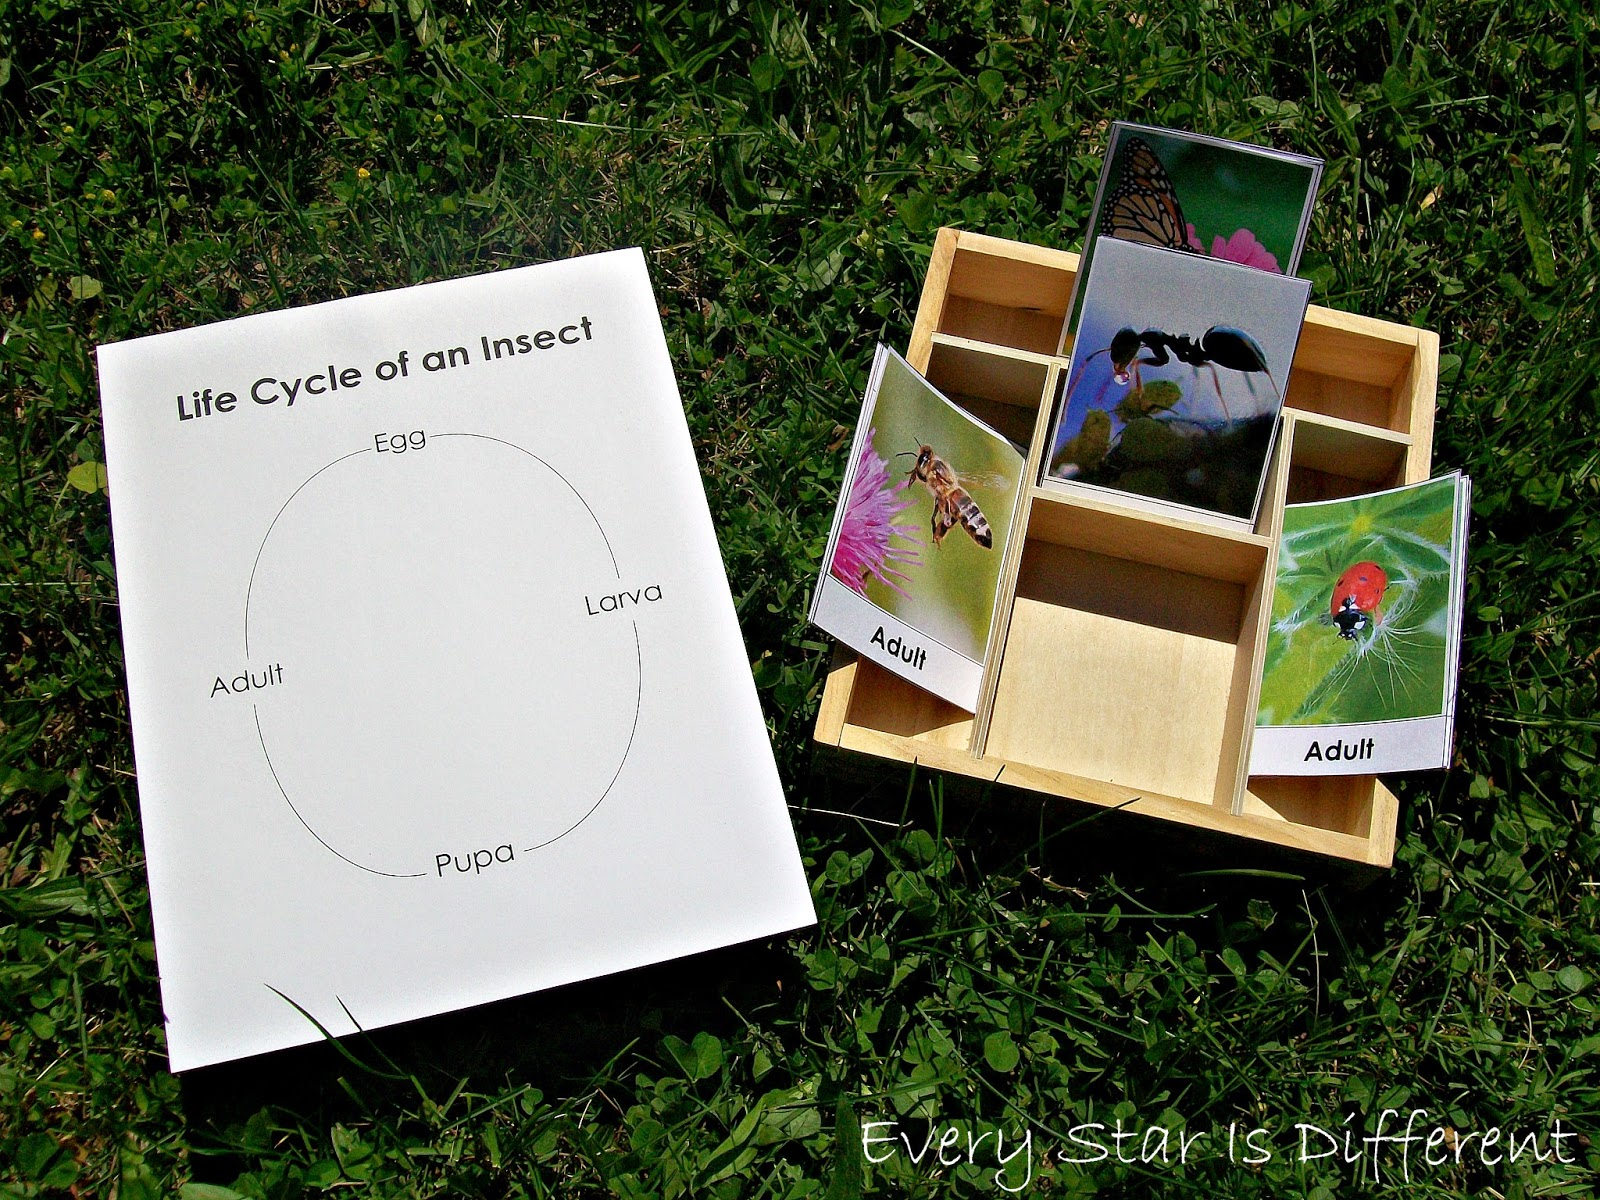 Life cycle of an insect activity for kids (free printable)